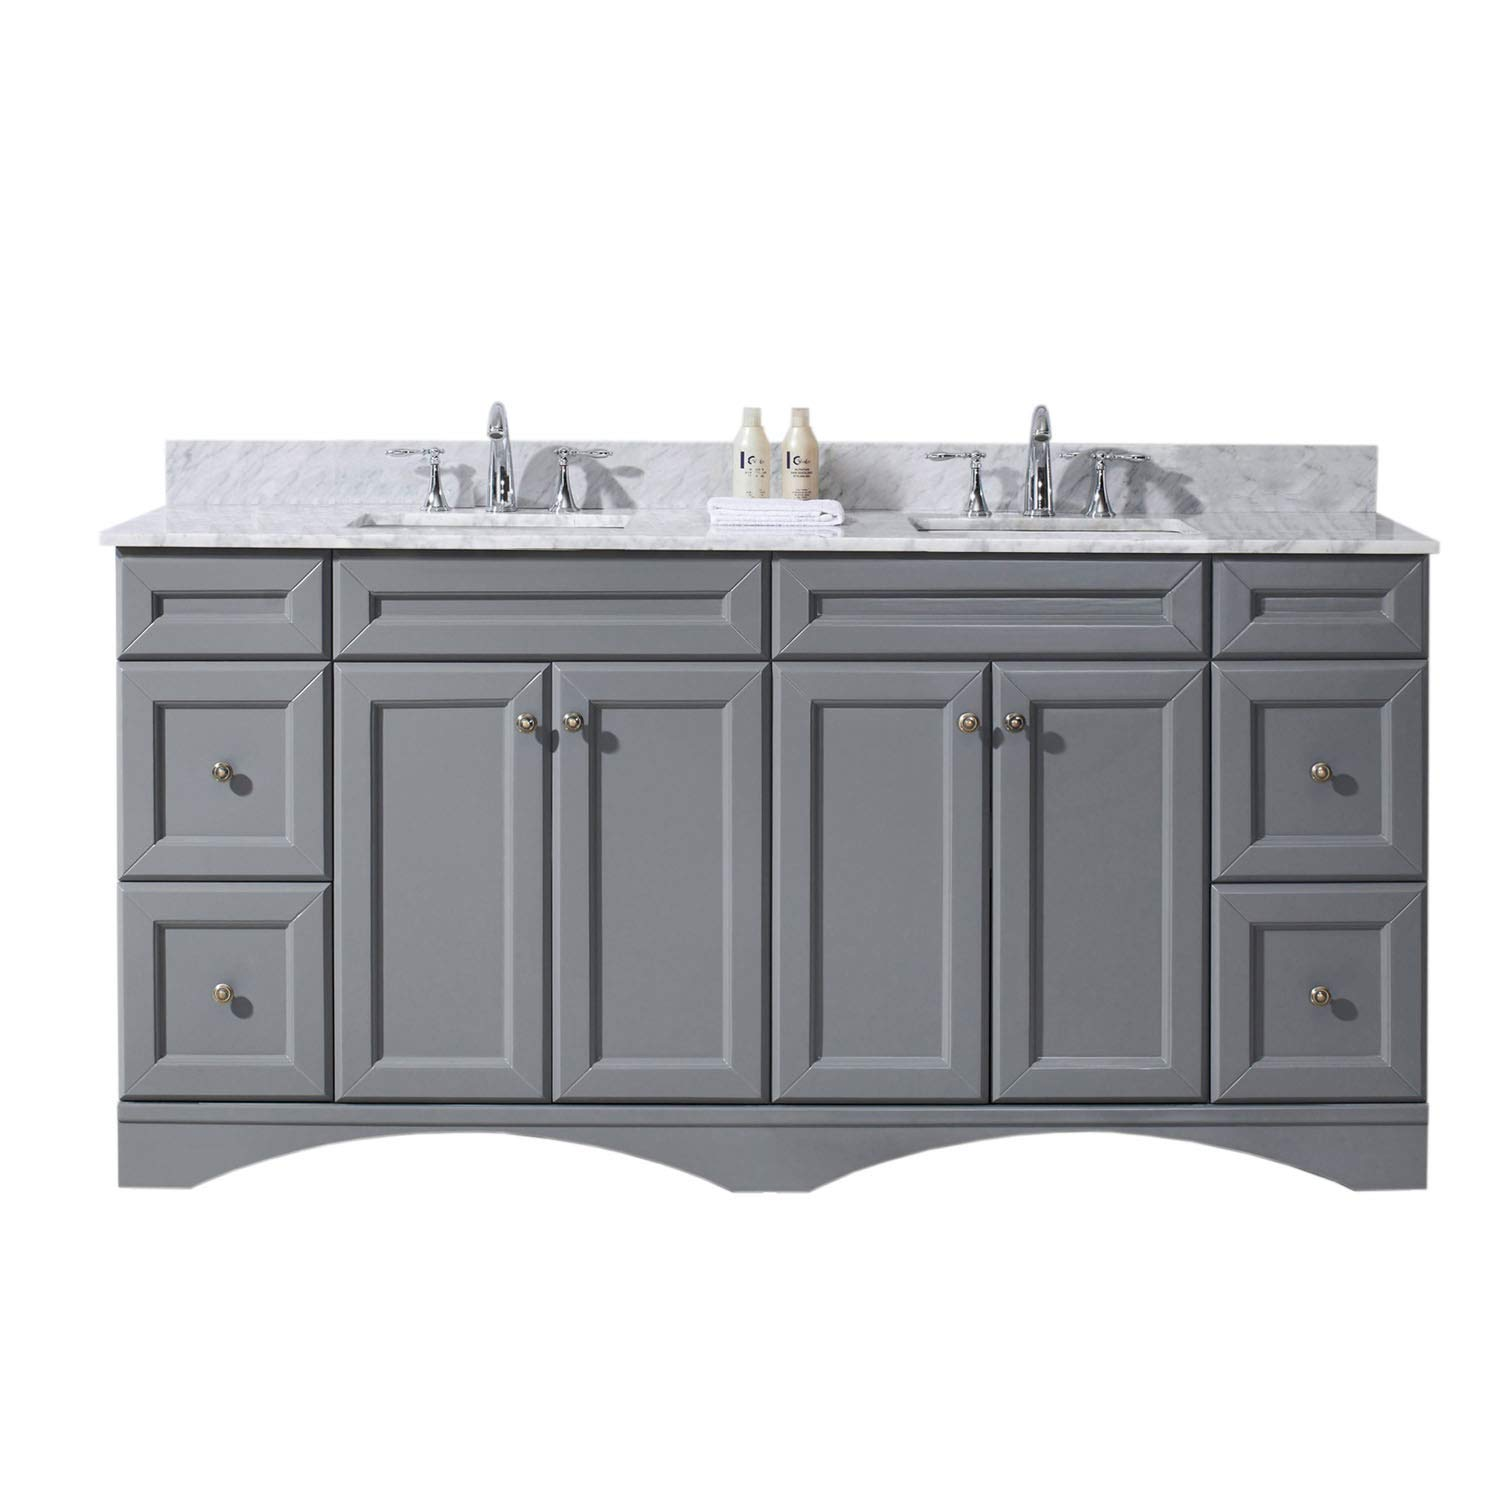 Virtu USA ED-25072-WMSQ-GR-NM Talisa 72 Double Bathroom Vanity in Grey with Marble Top and Square Sink, 72 inches, Cool Gray